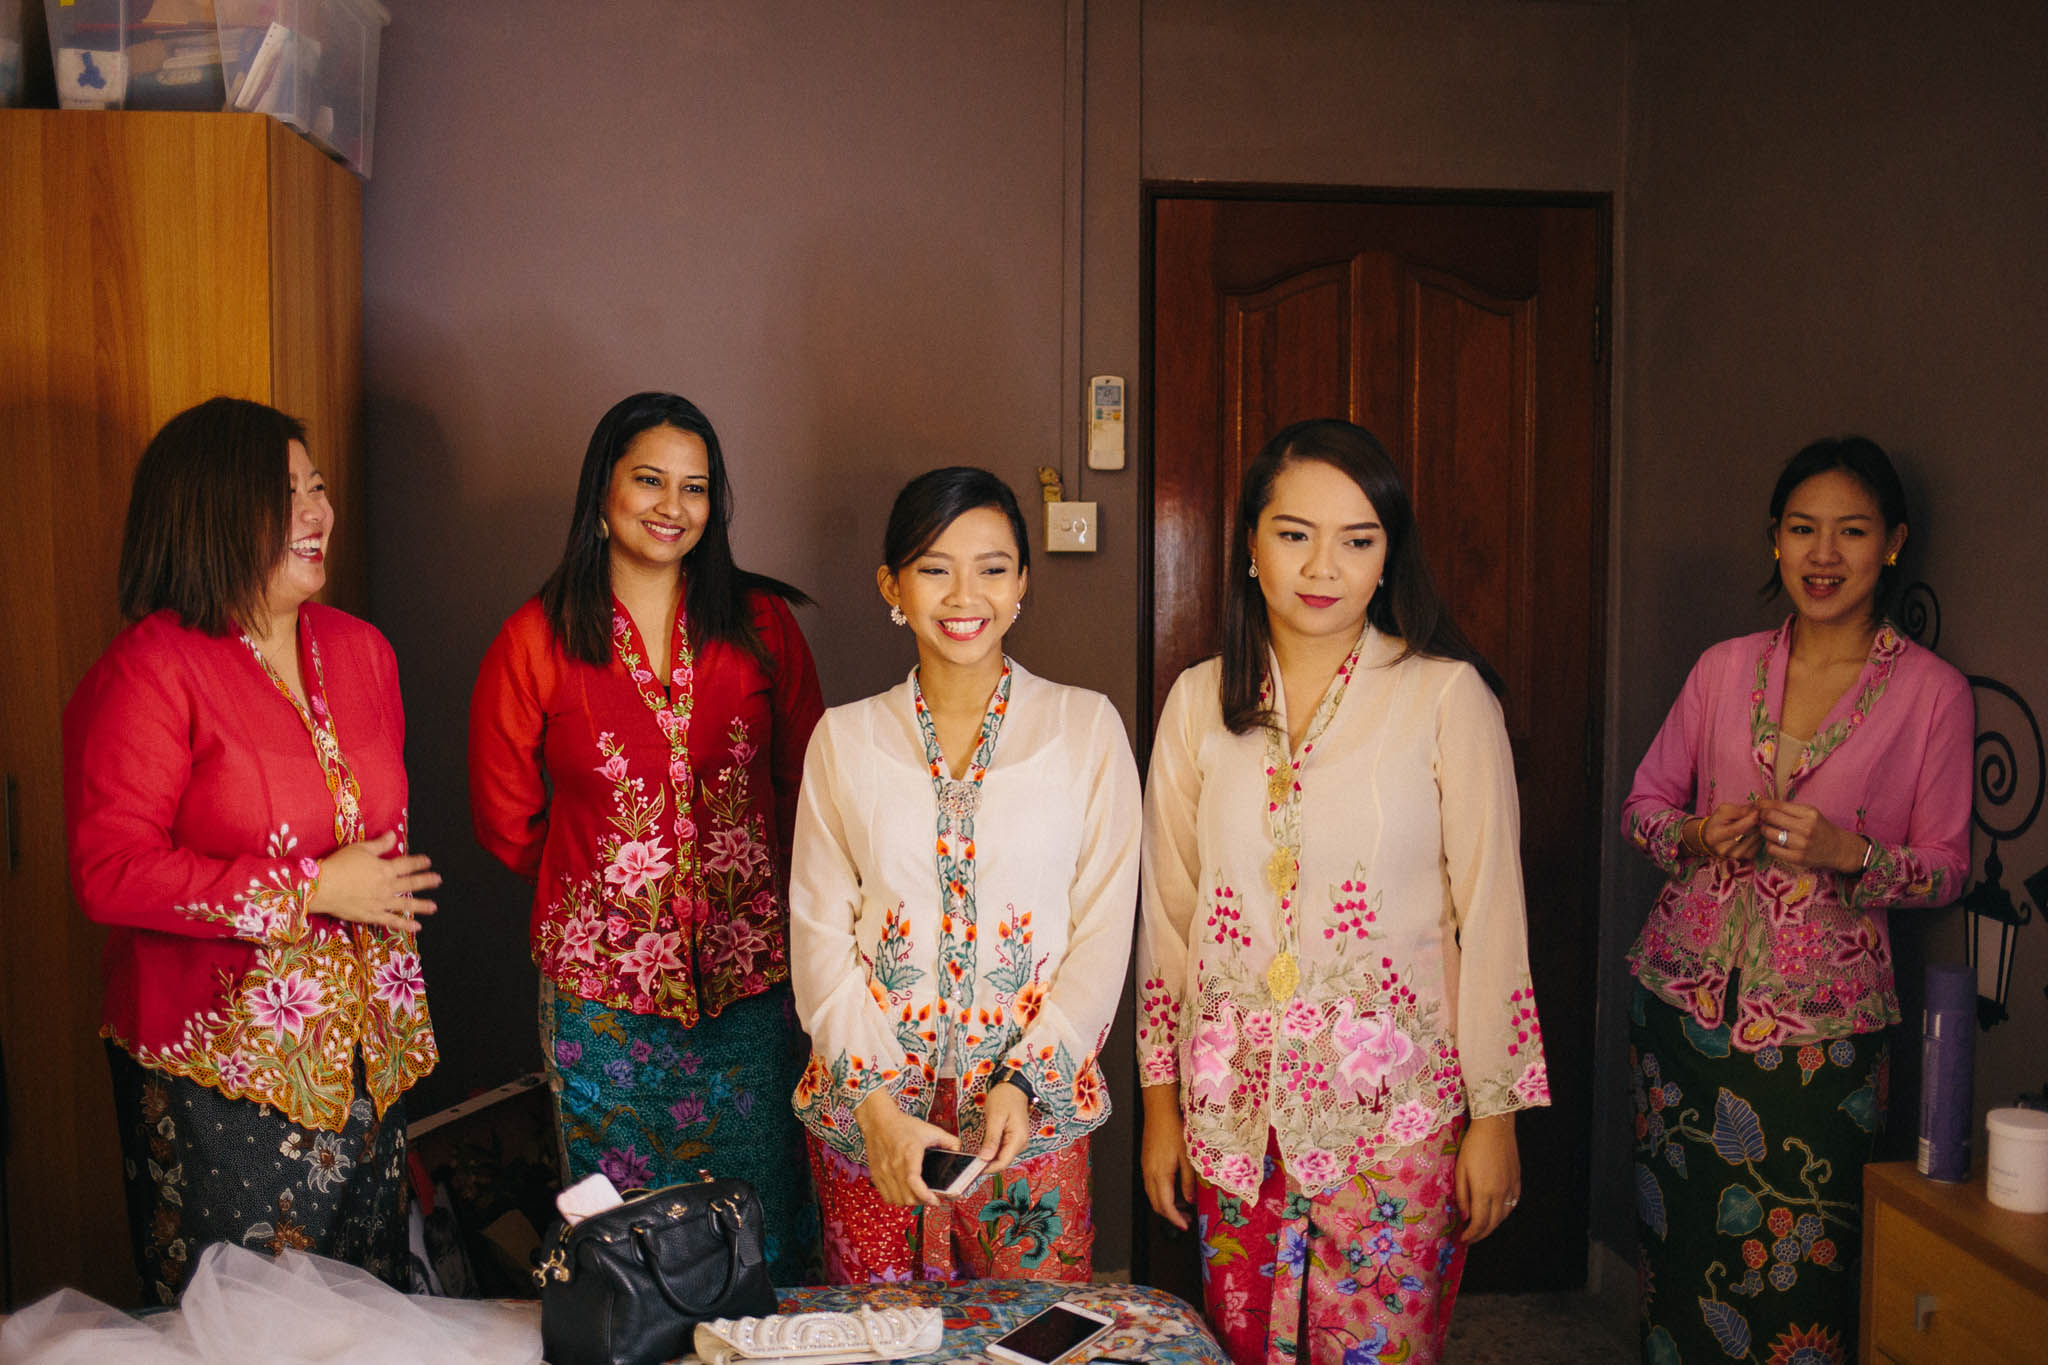 singapore-wedding-photographer-wedding-hafiana-teck-kuan-003.jpg